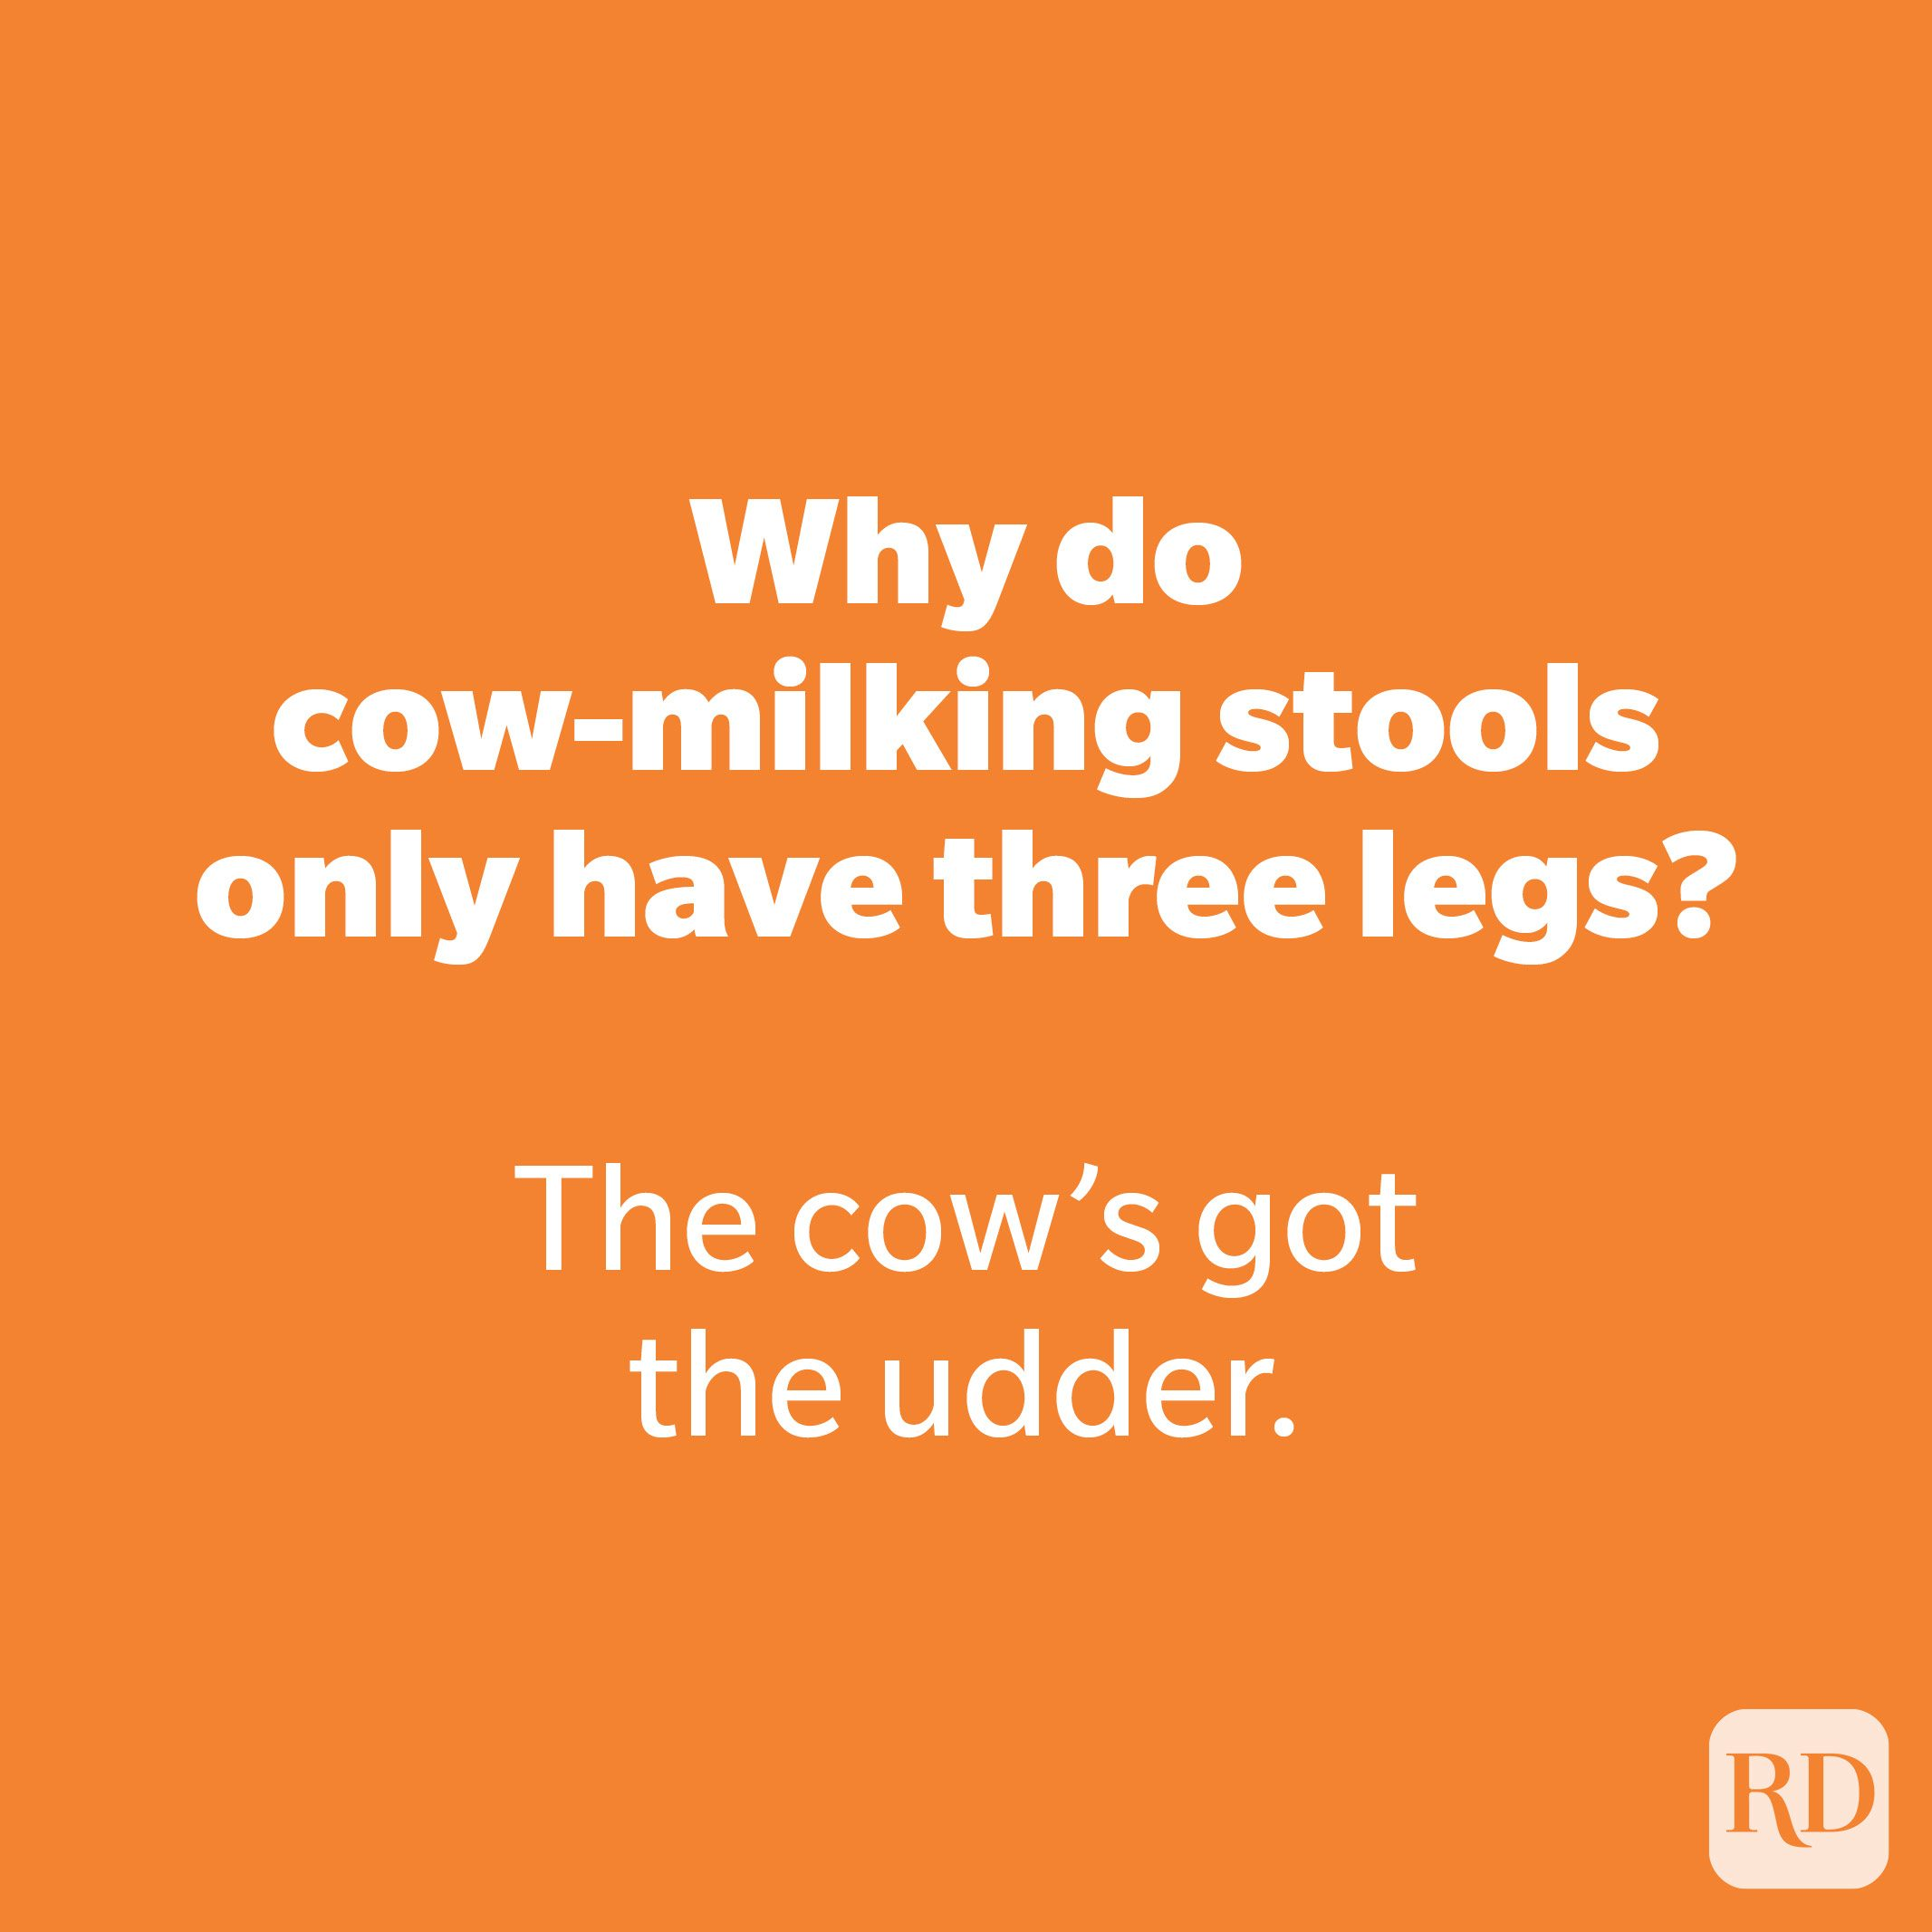 Why do cow-milking stools only have three legs?